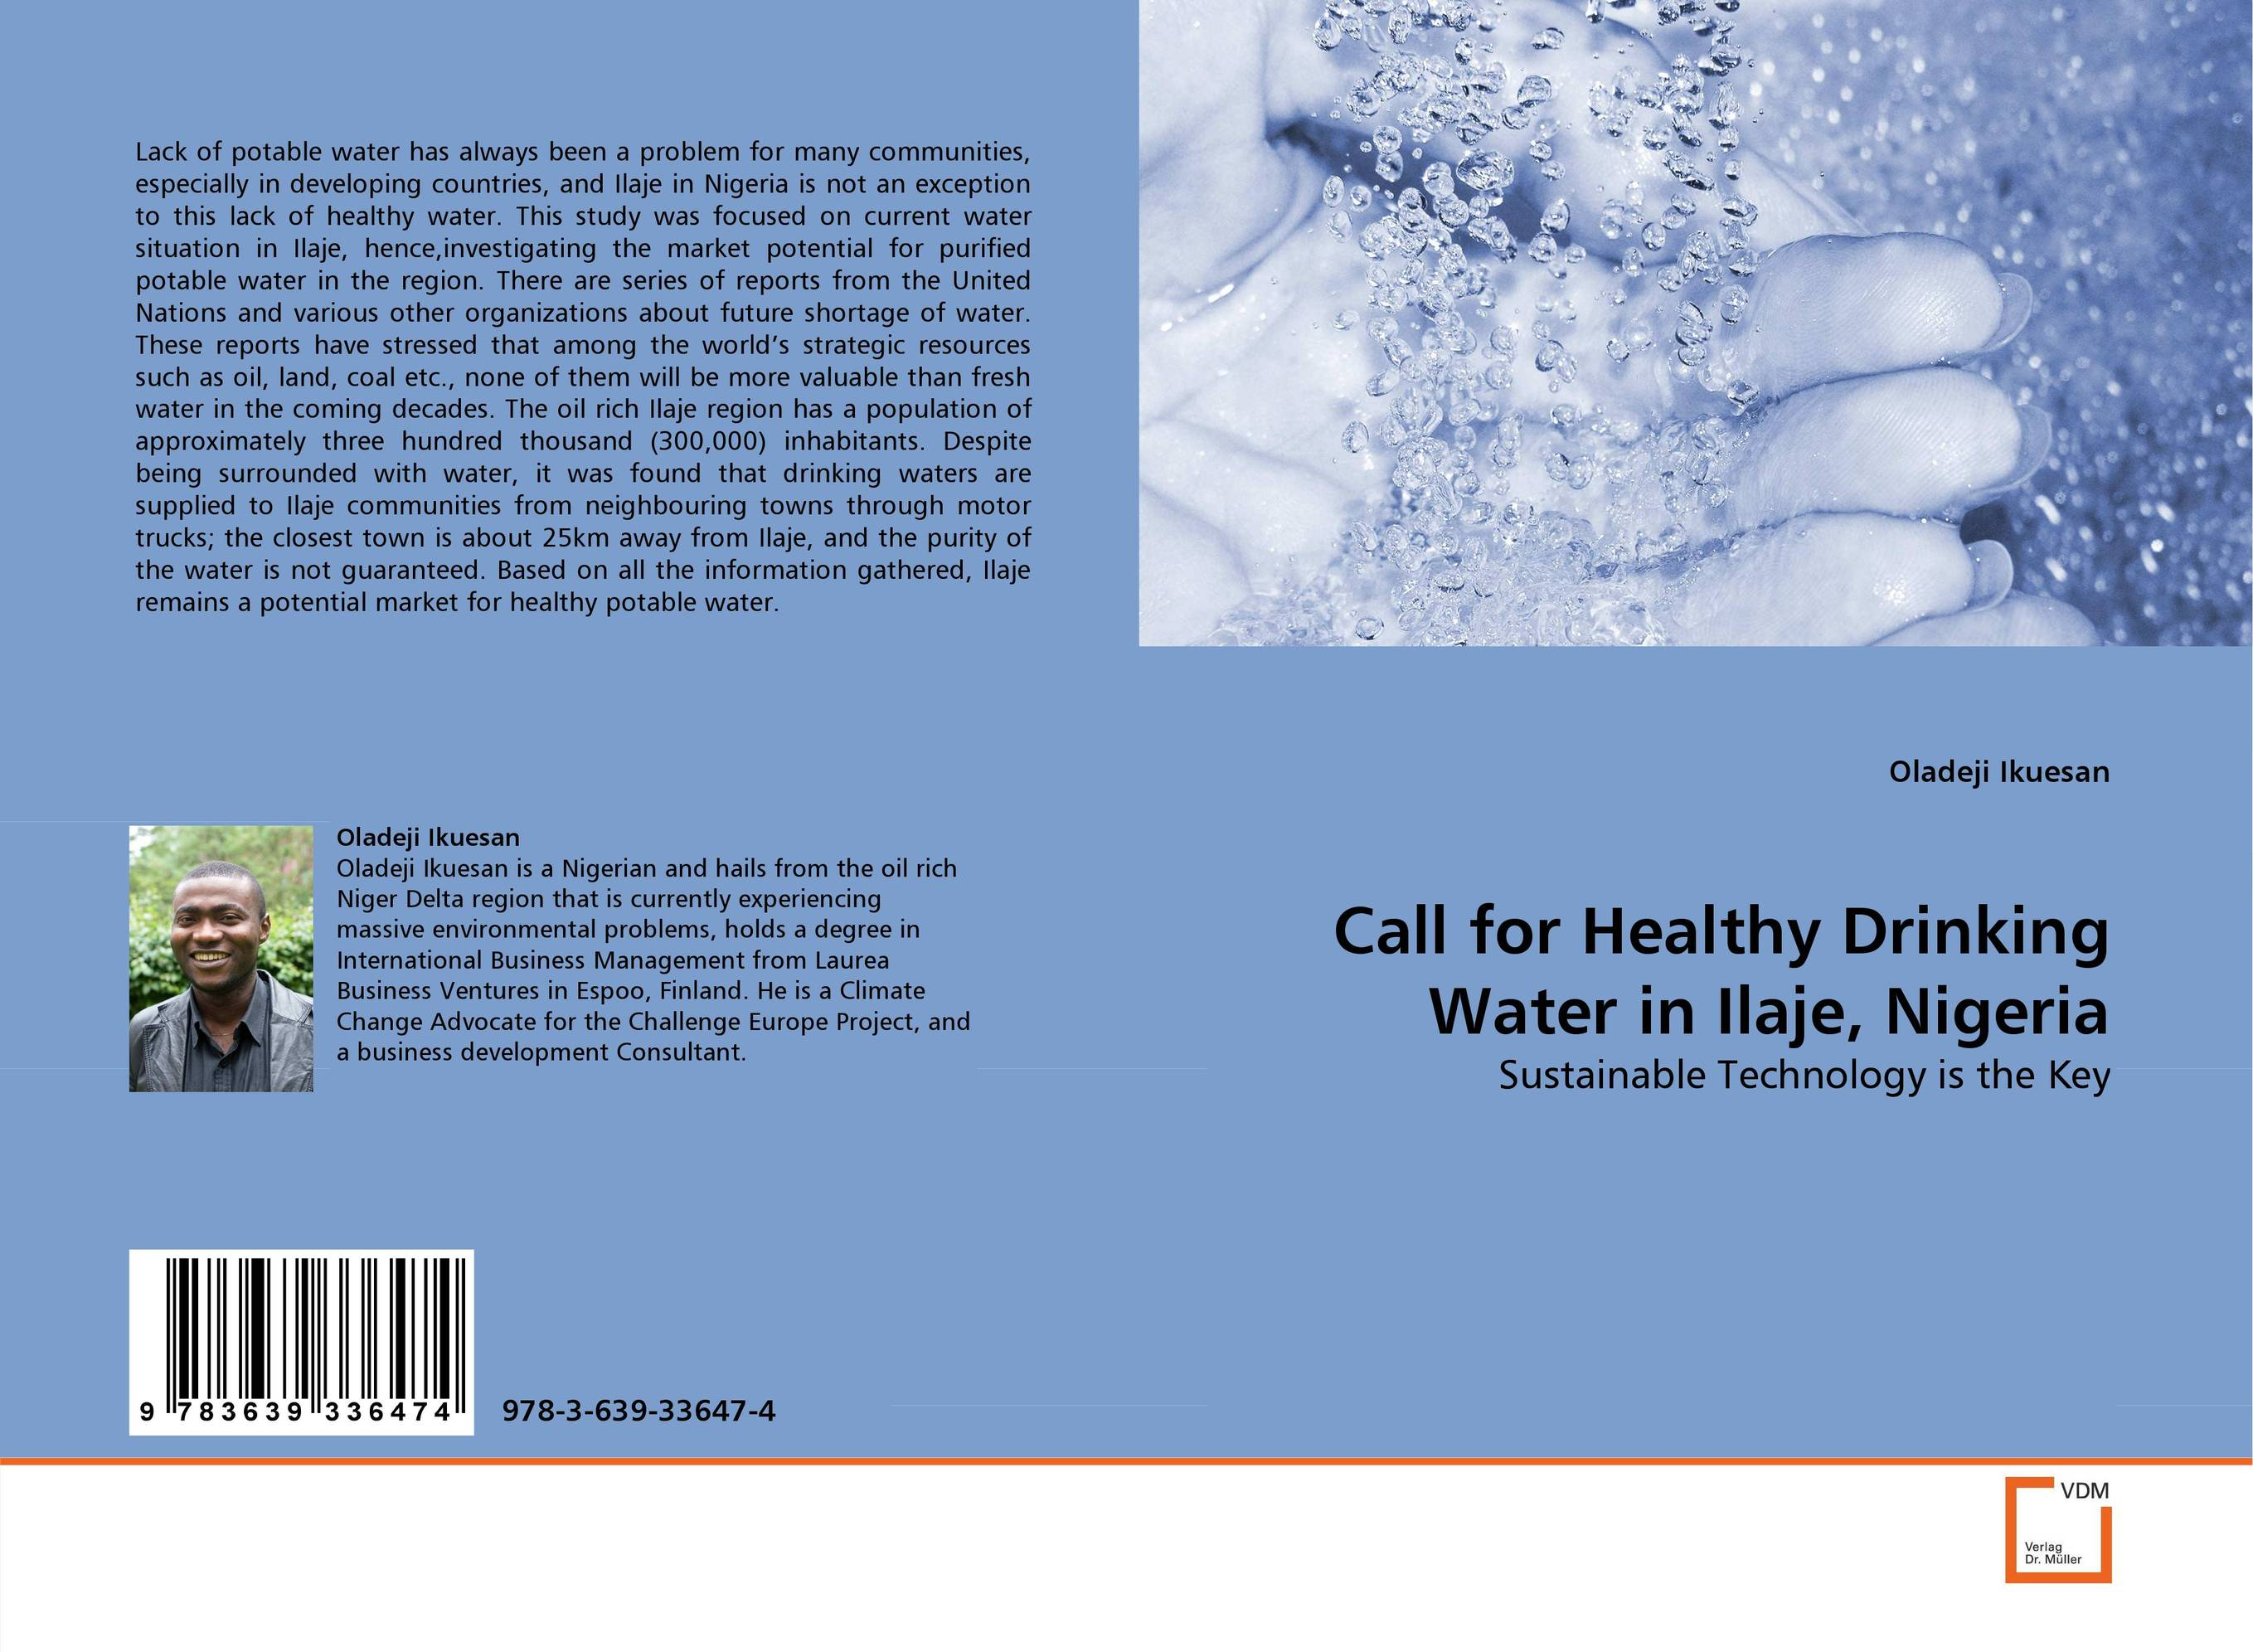 Call for Healthy Drinking Water in Ilaje, Nigeria bride of the water god v 3